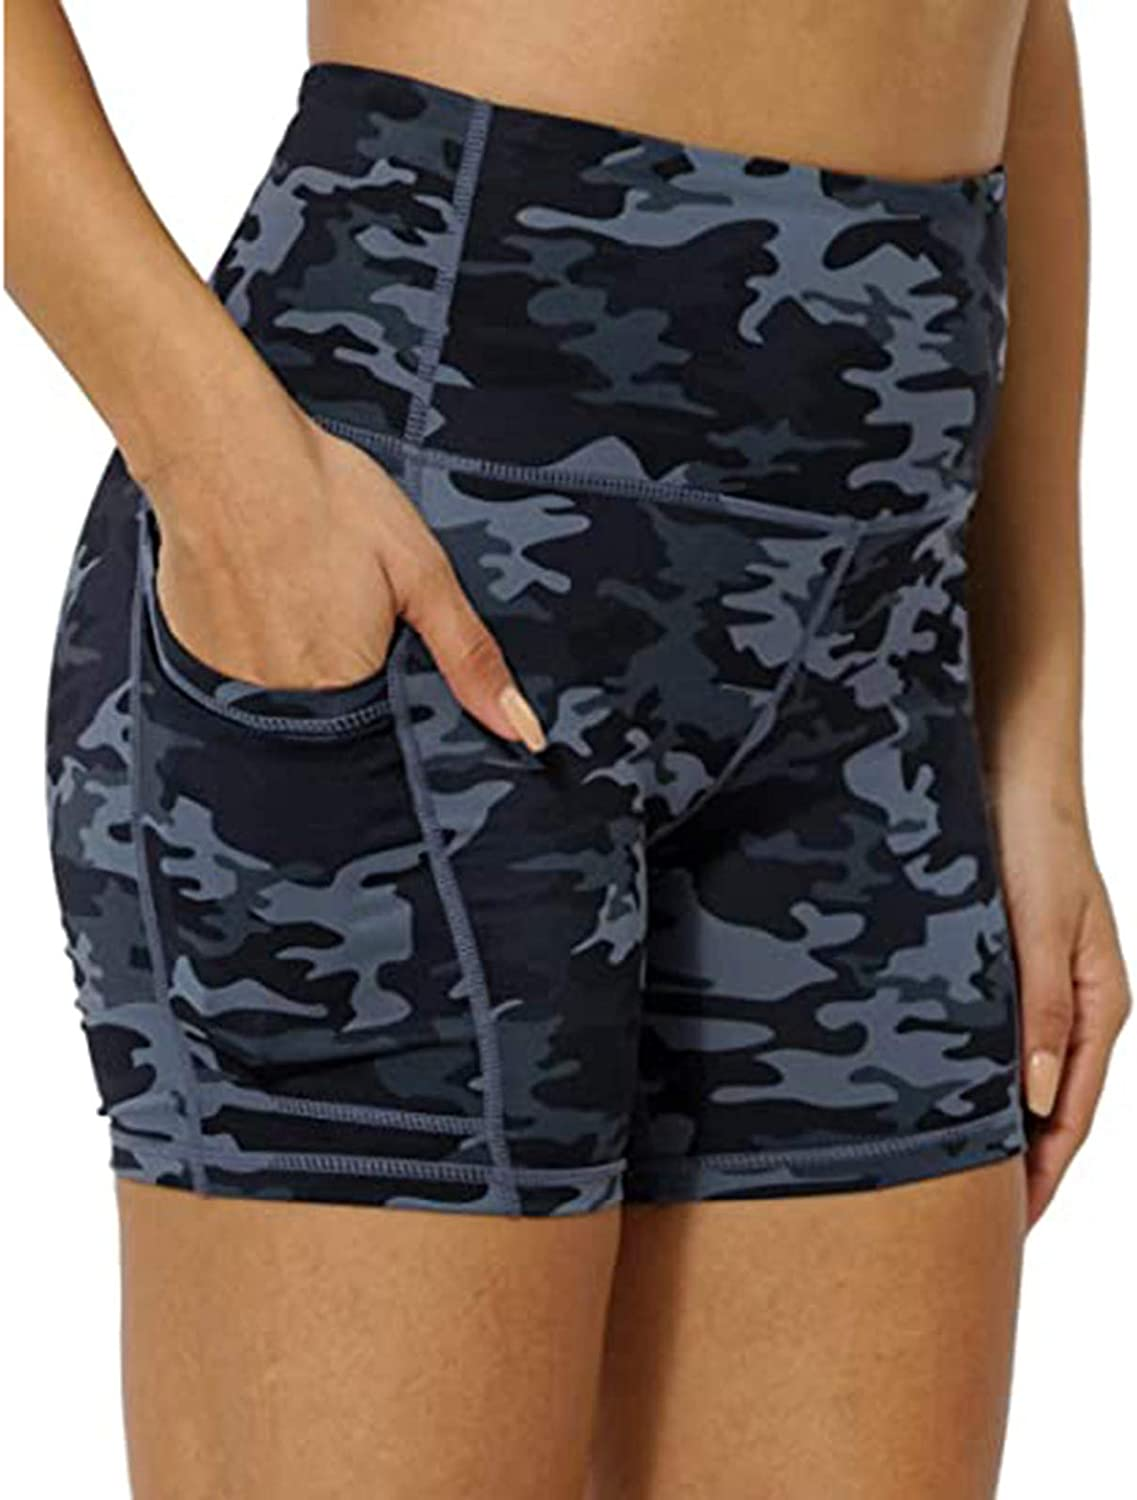 Wocachi High Waist Yoga Shorts for Women, Camouflage Tummy Control Shorts Workout Compression Shorts with Pockets